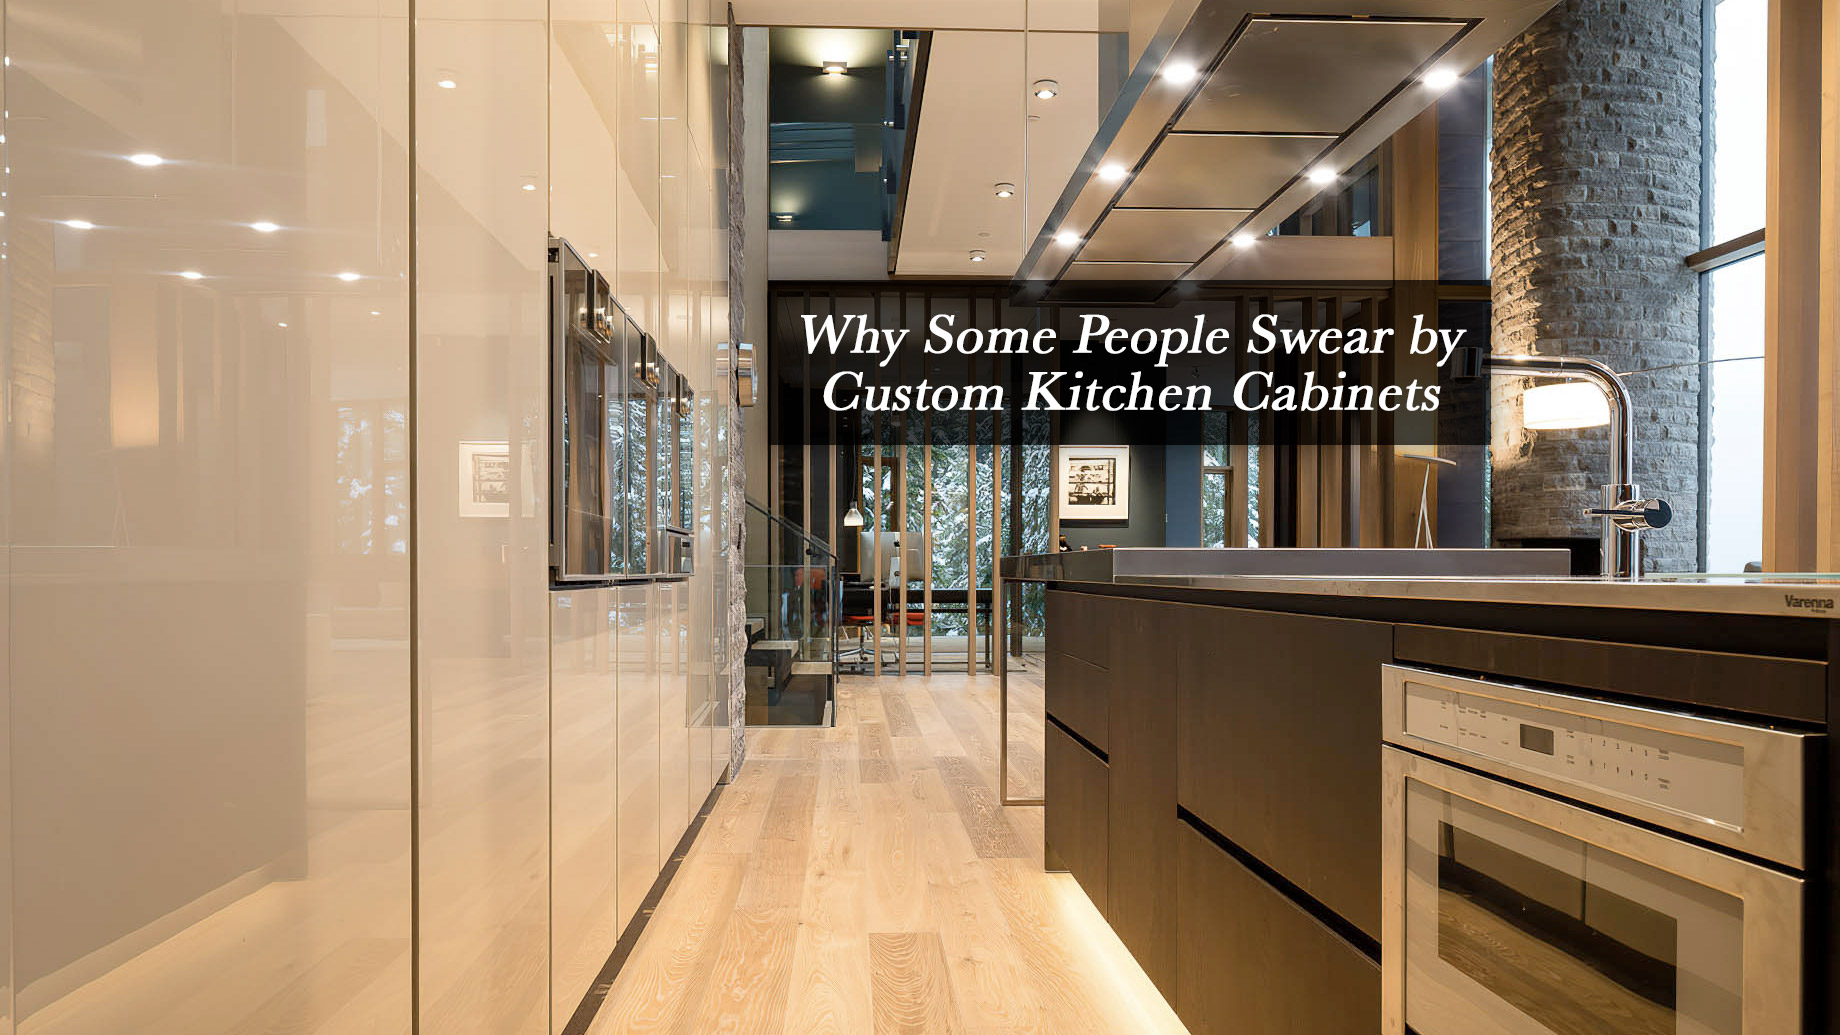 Why Some People Swear by Custom Kitchen Cabinets